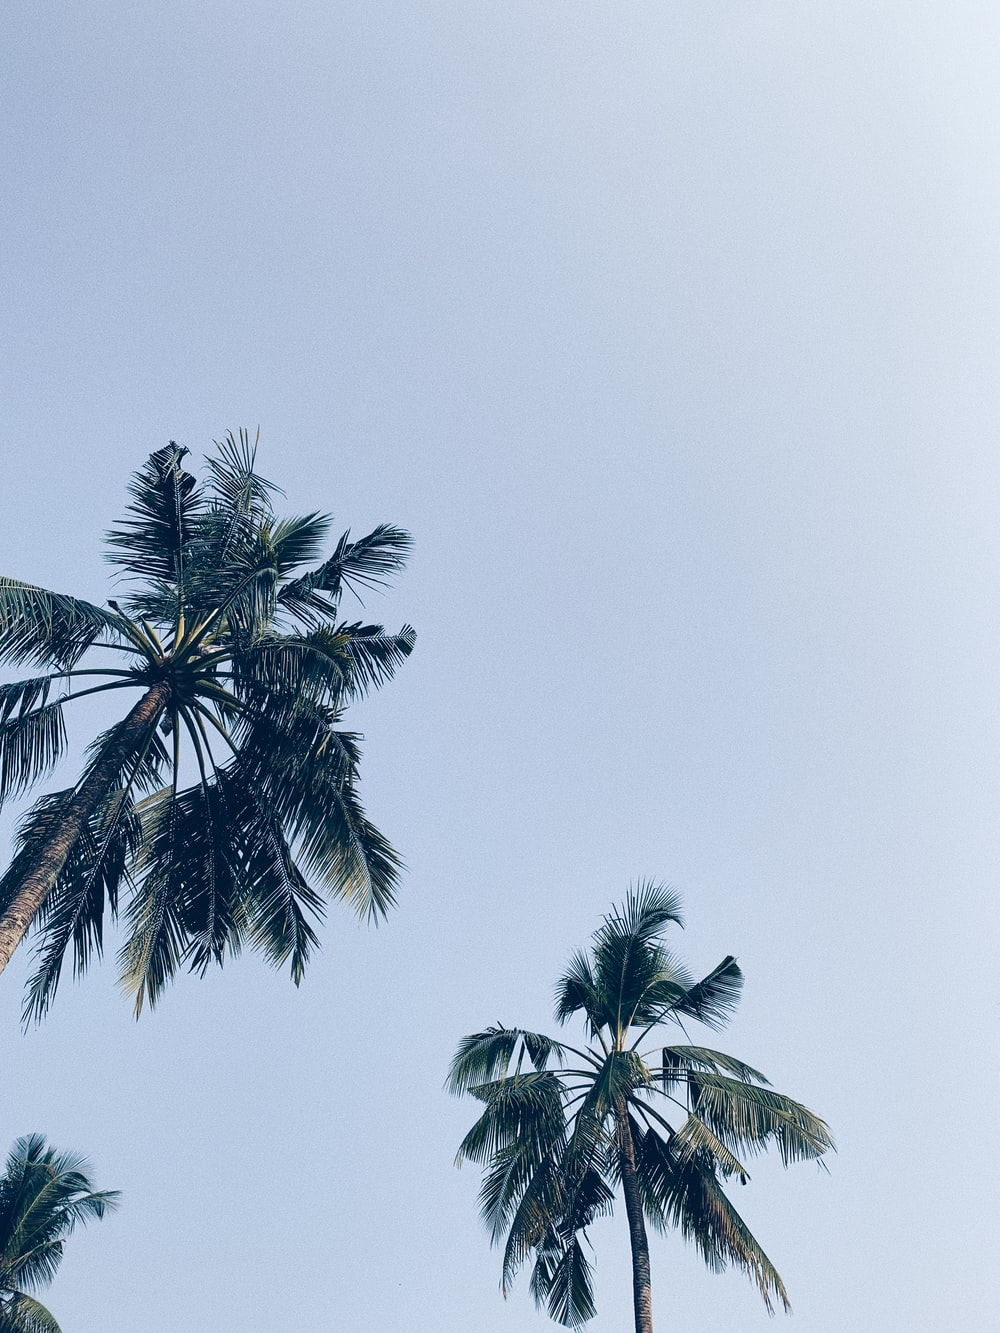 green-leafed palm trees